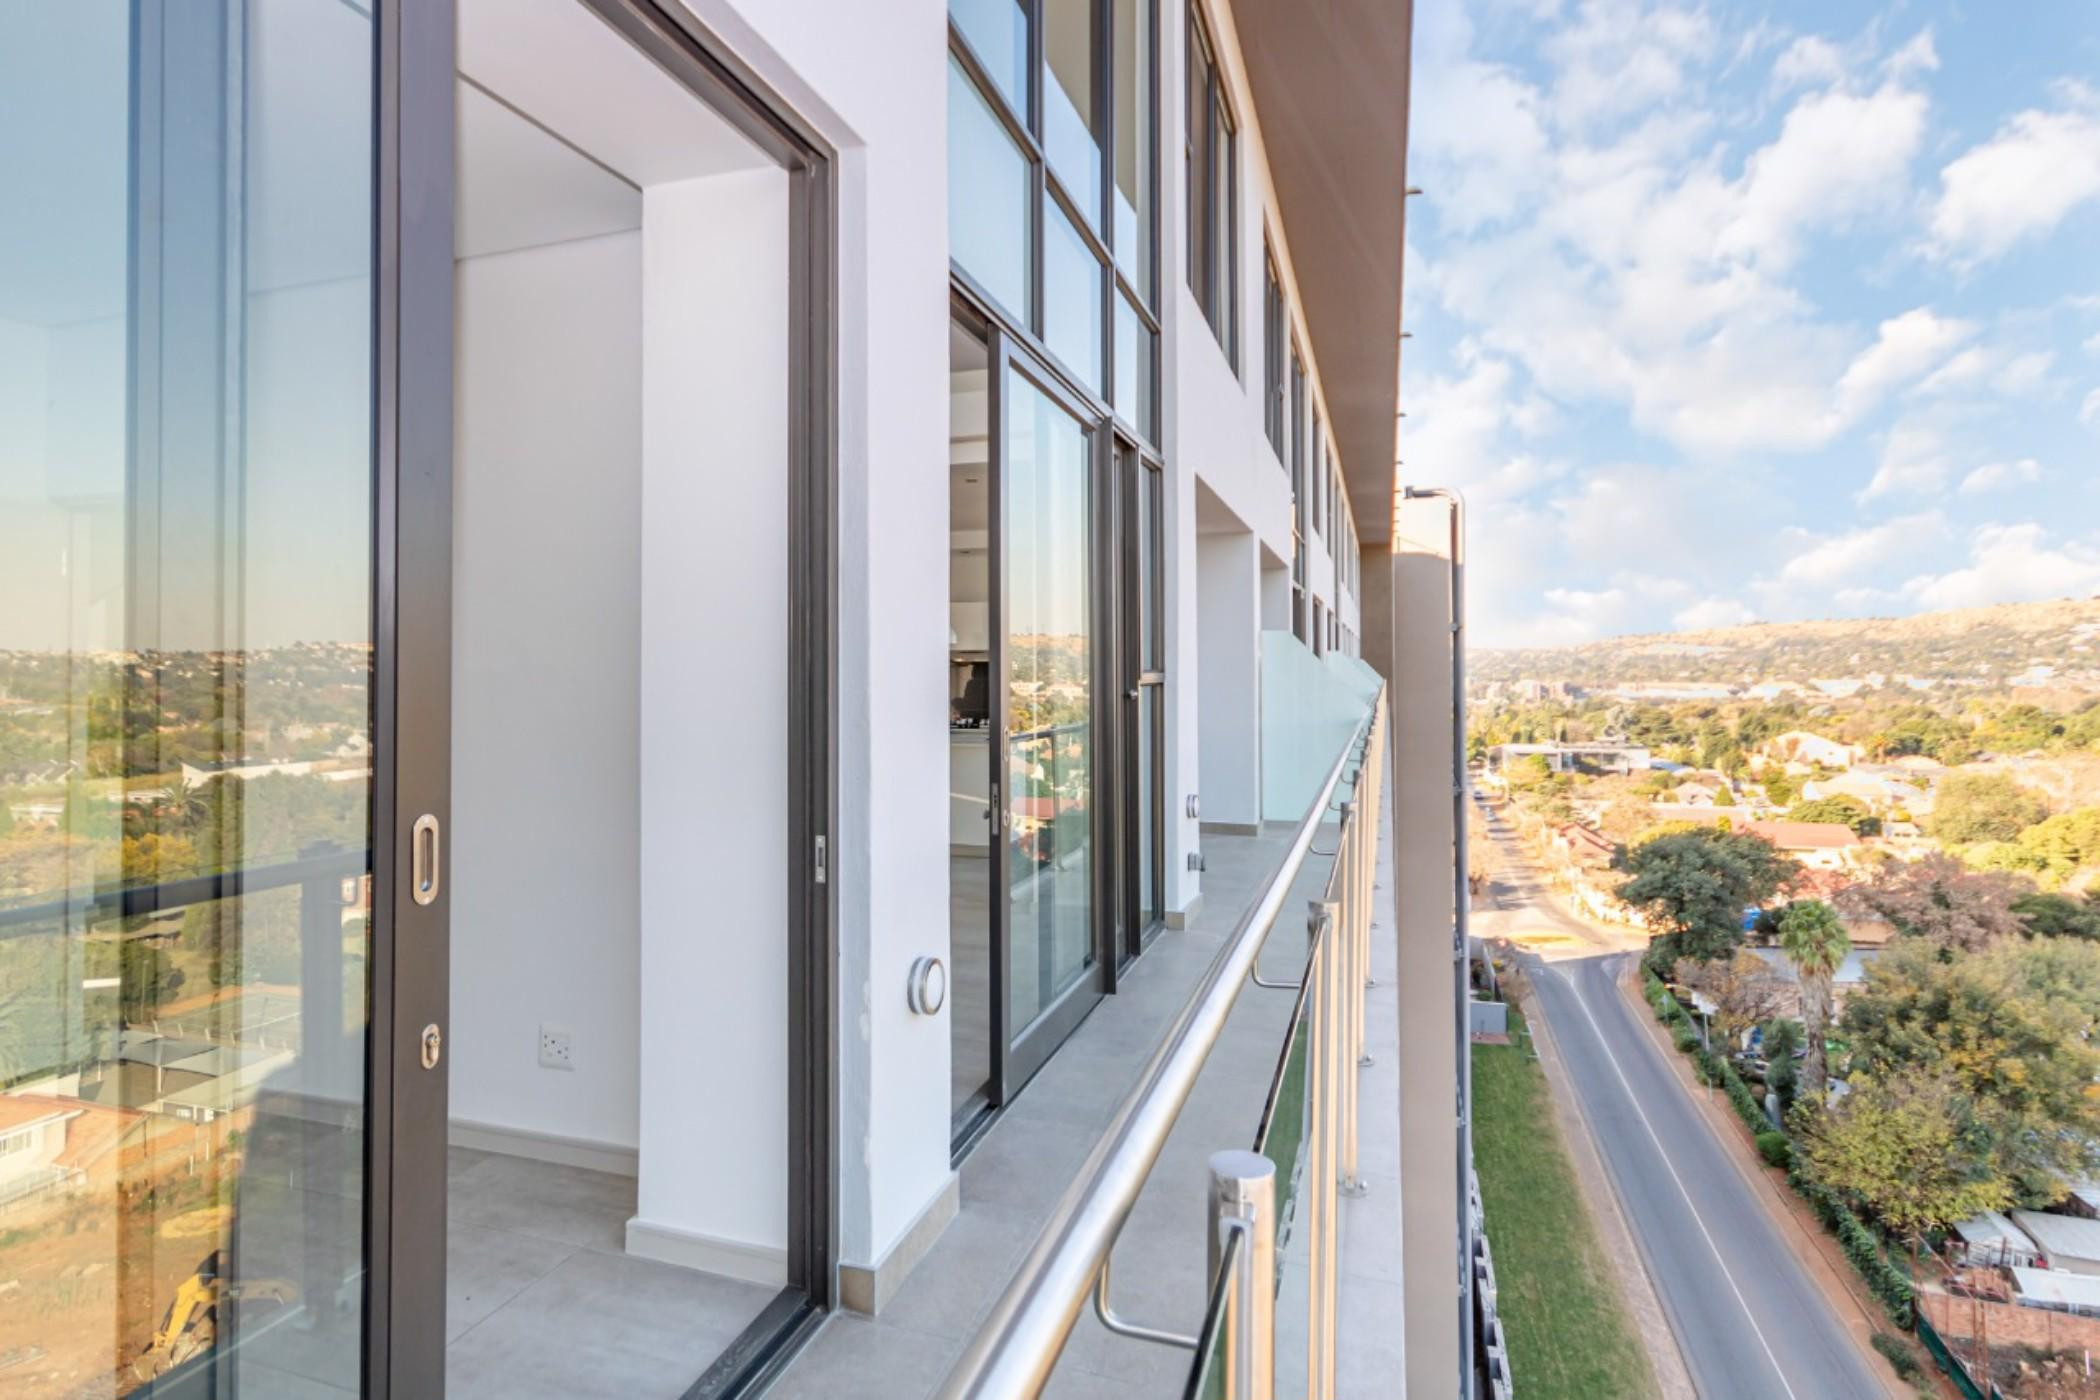 https://listing.pamgolding.co.za/images/properties/201908/1491223/H/1491223_H_2.jpg